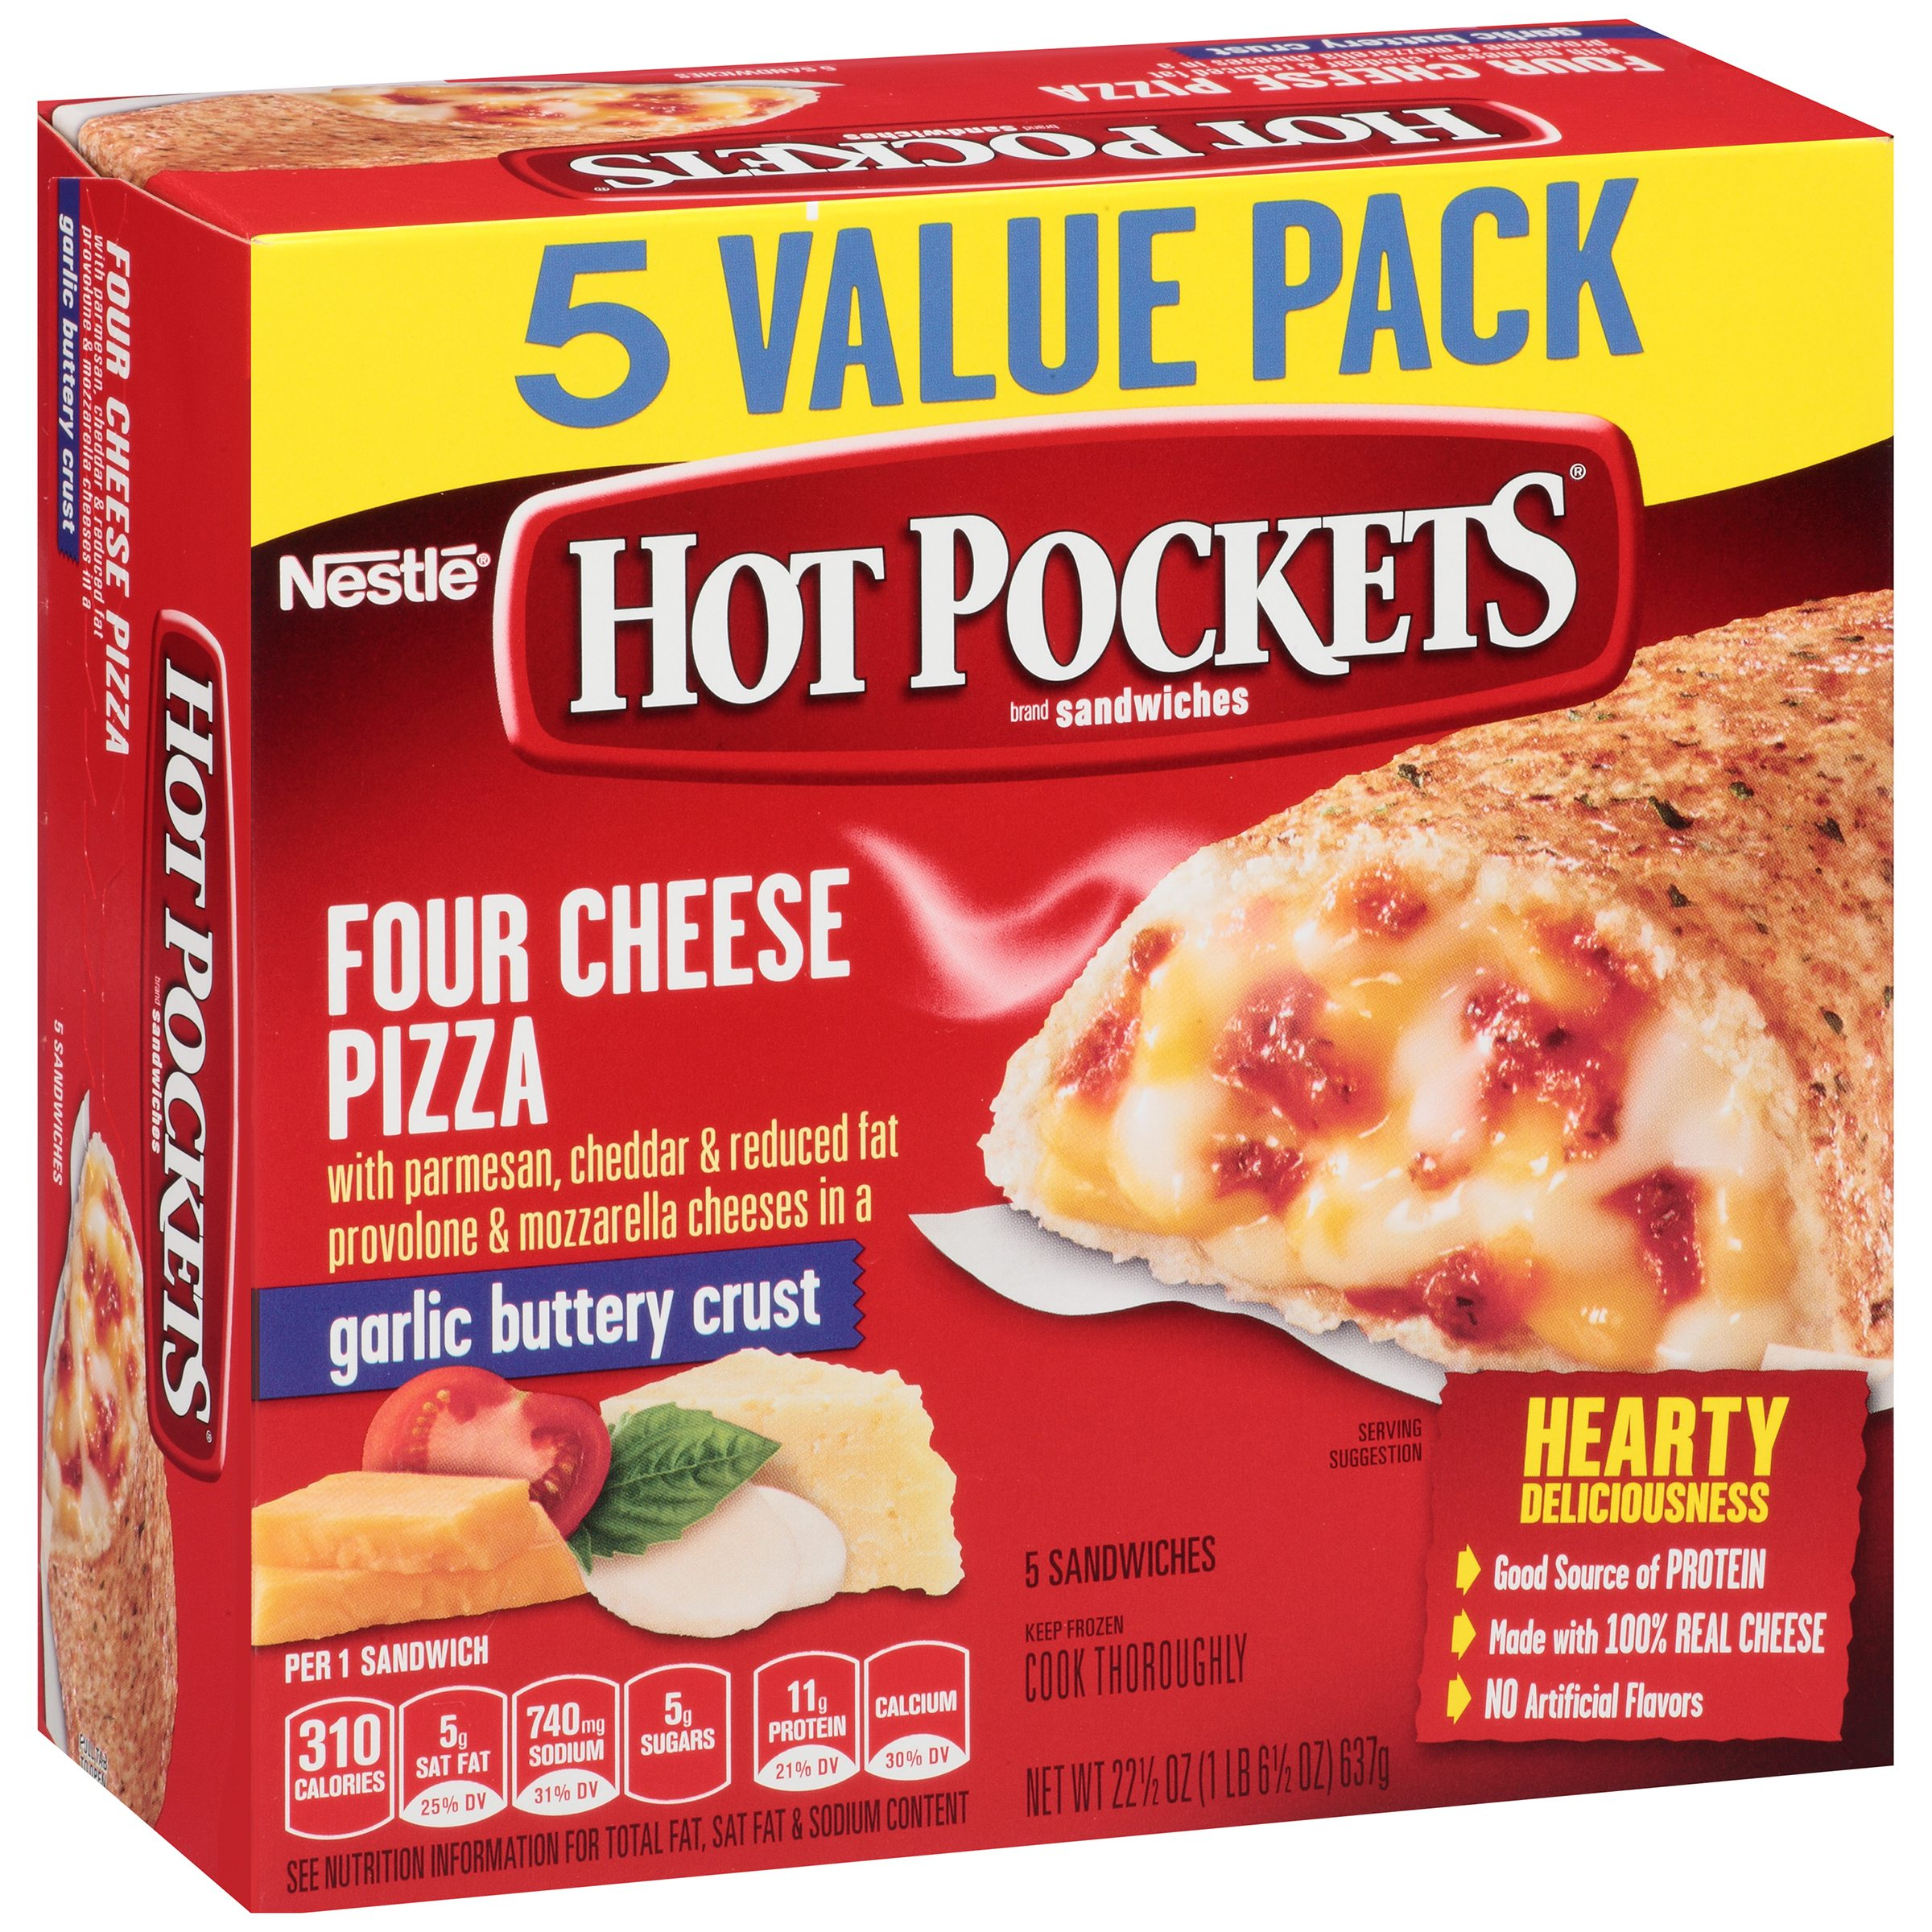 HOT POCKETS Frozen Sandwiches Four Cheese Pizza 5-Pack